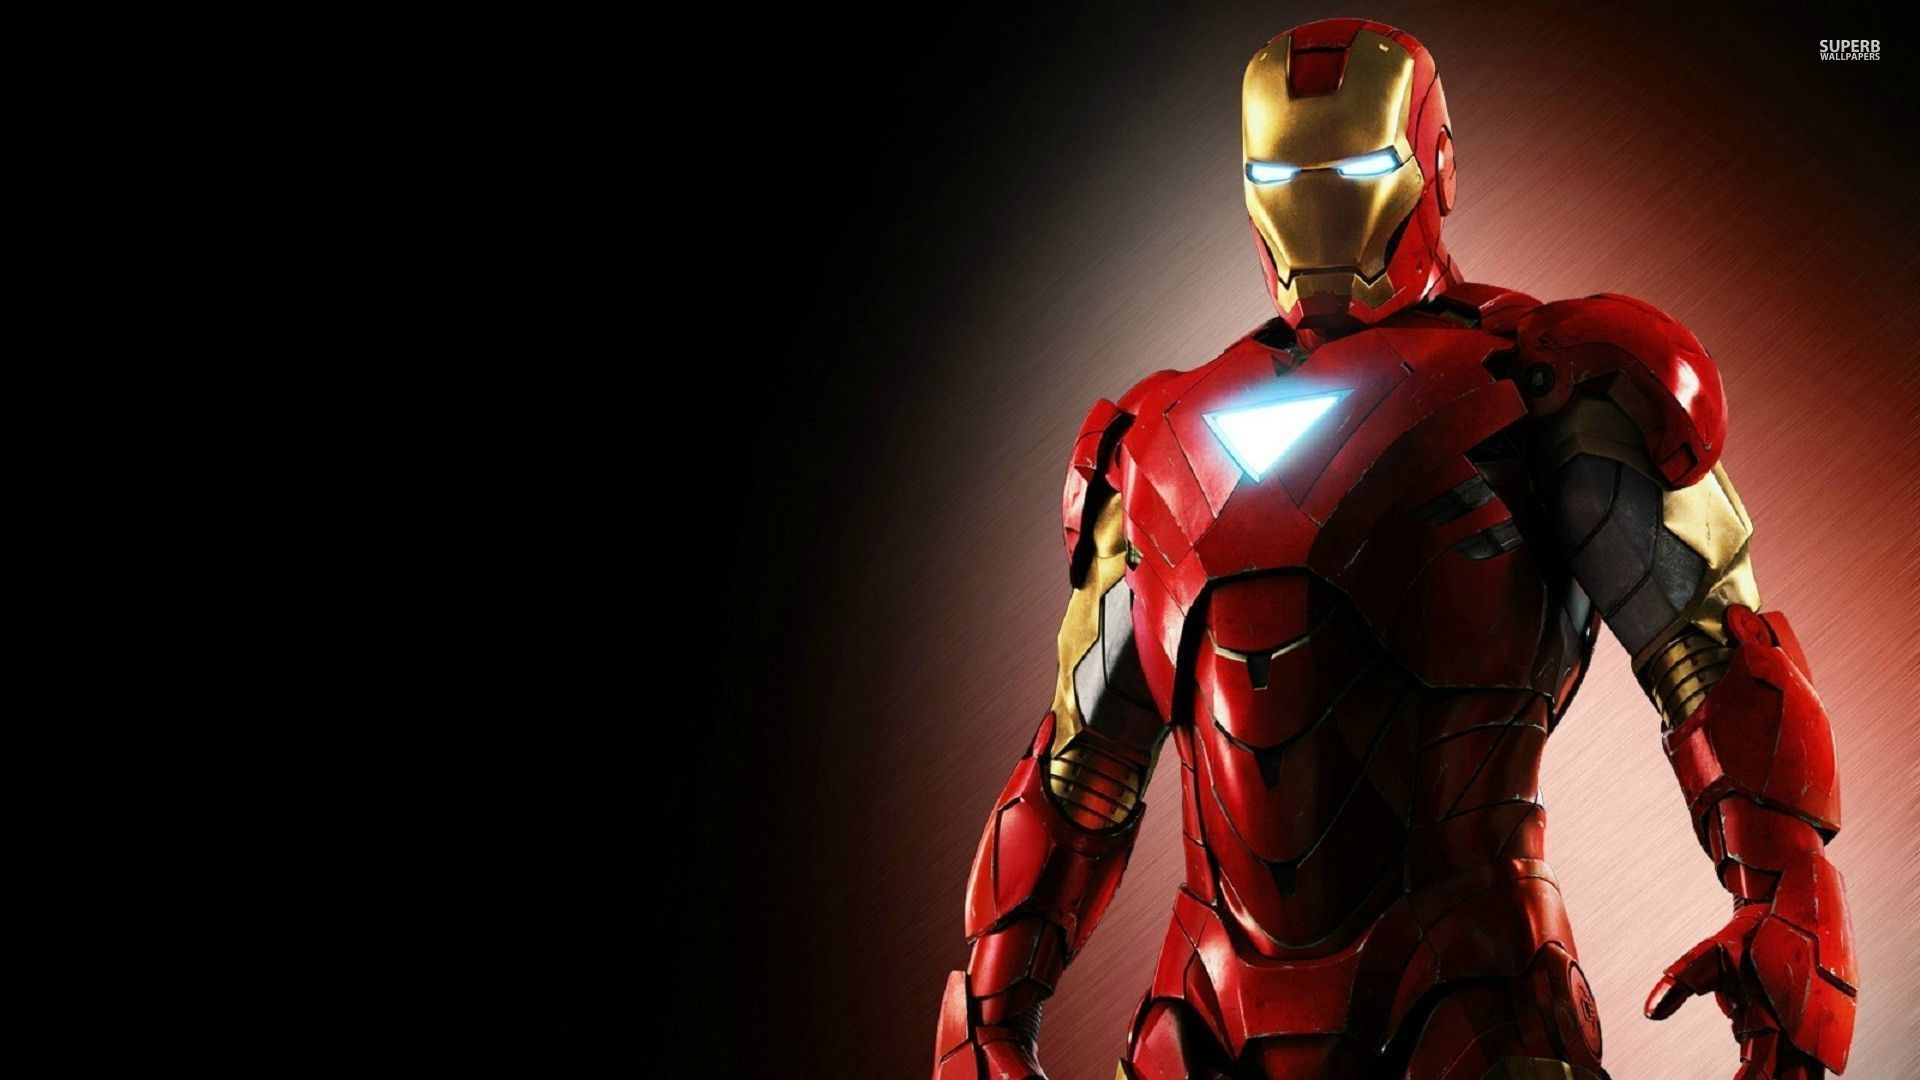 iron man hd marvel avenger